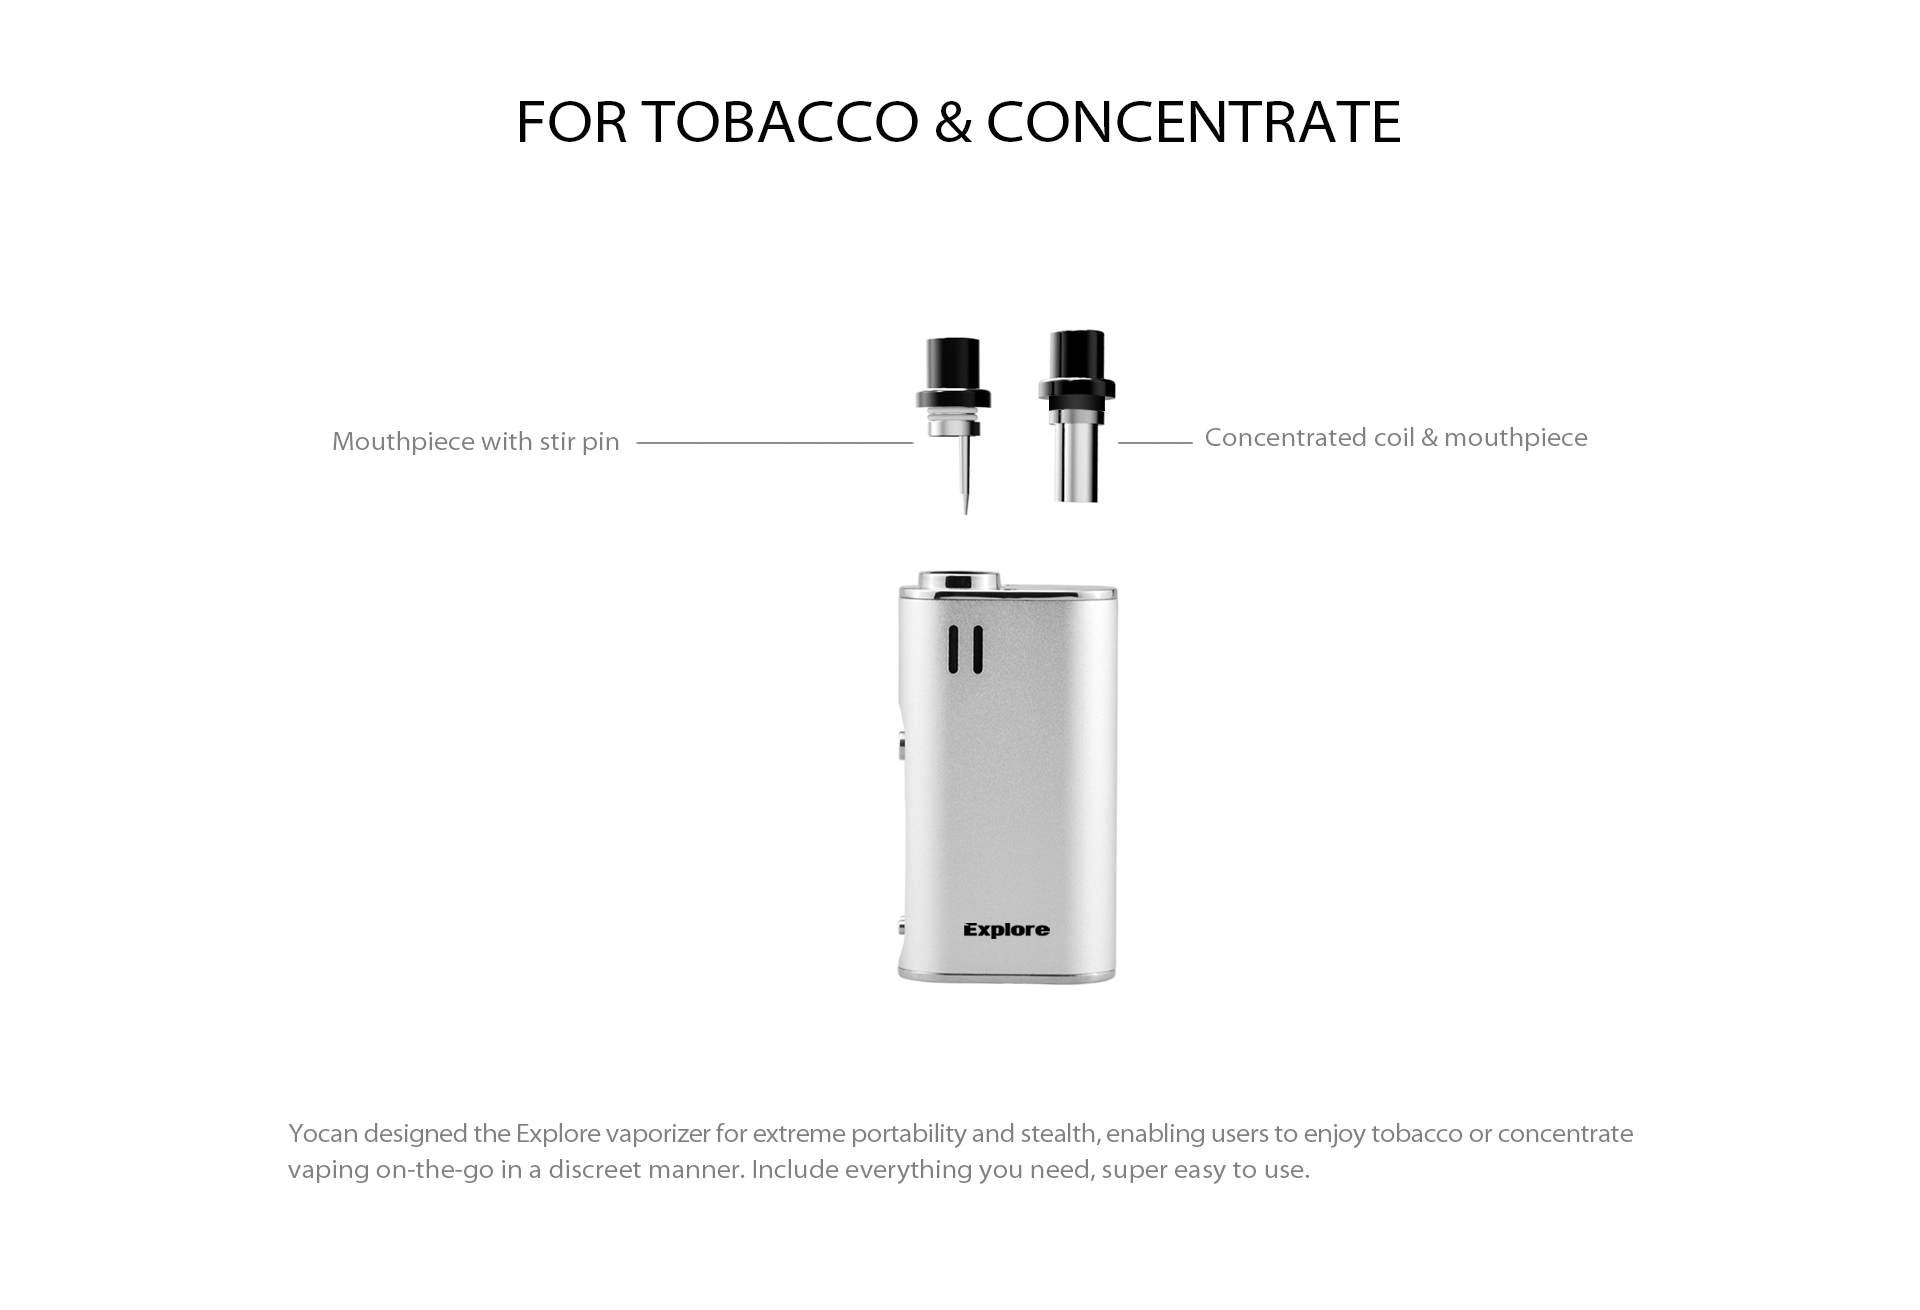 The Yocan Explore is a 2-in-1 multi-vaporizer for both wax-like concentrates and dry herb mixtures.